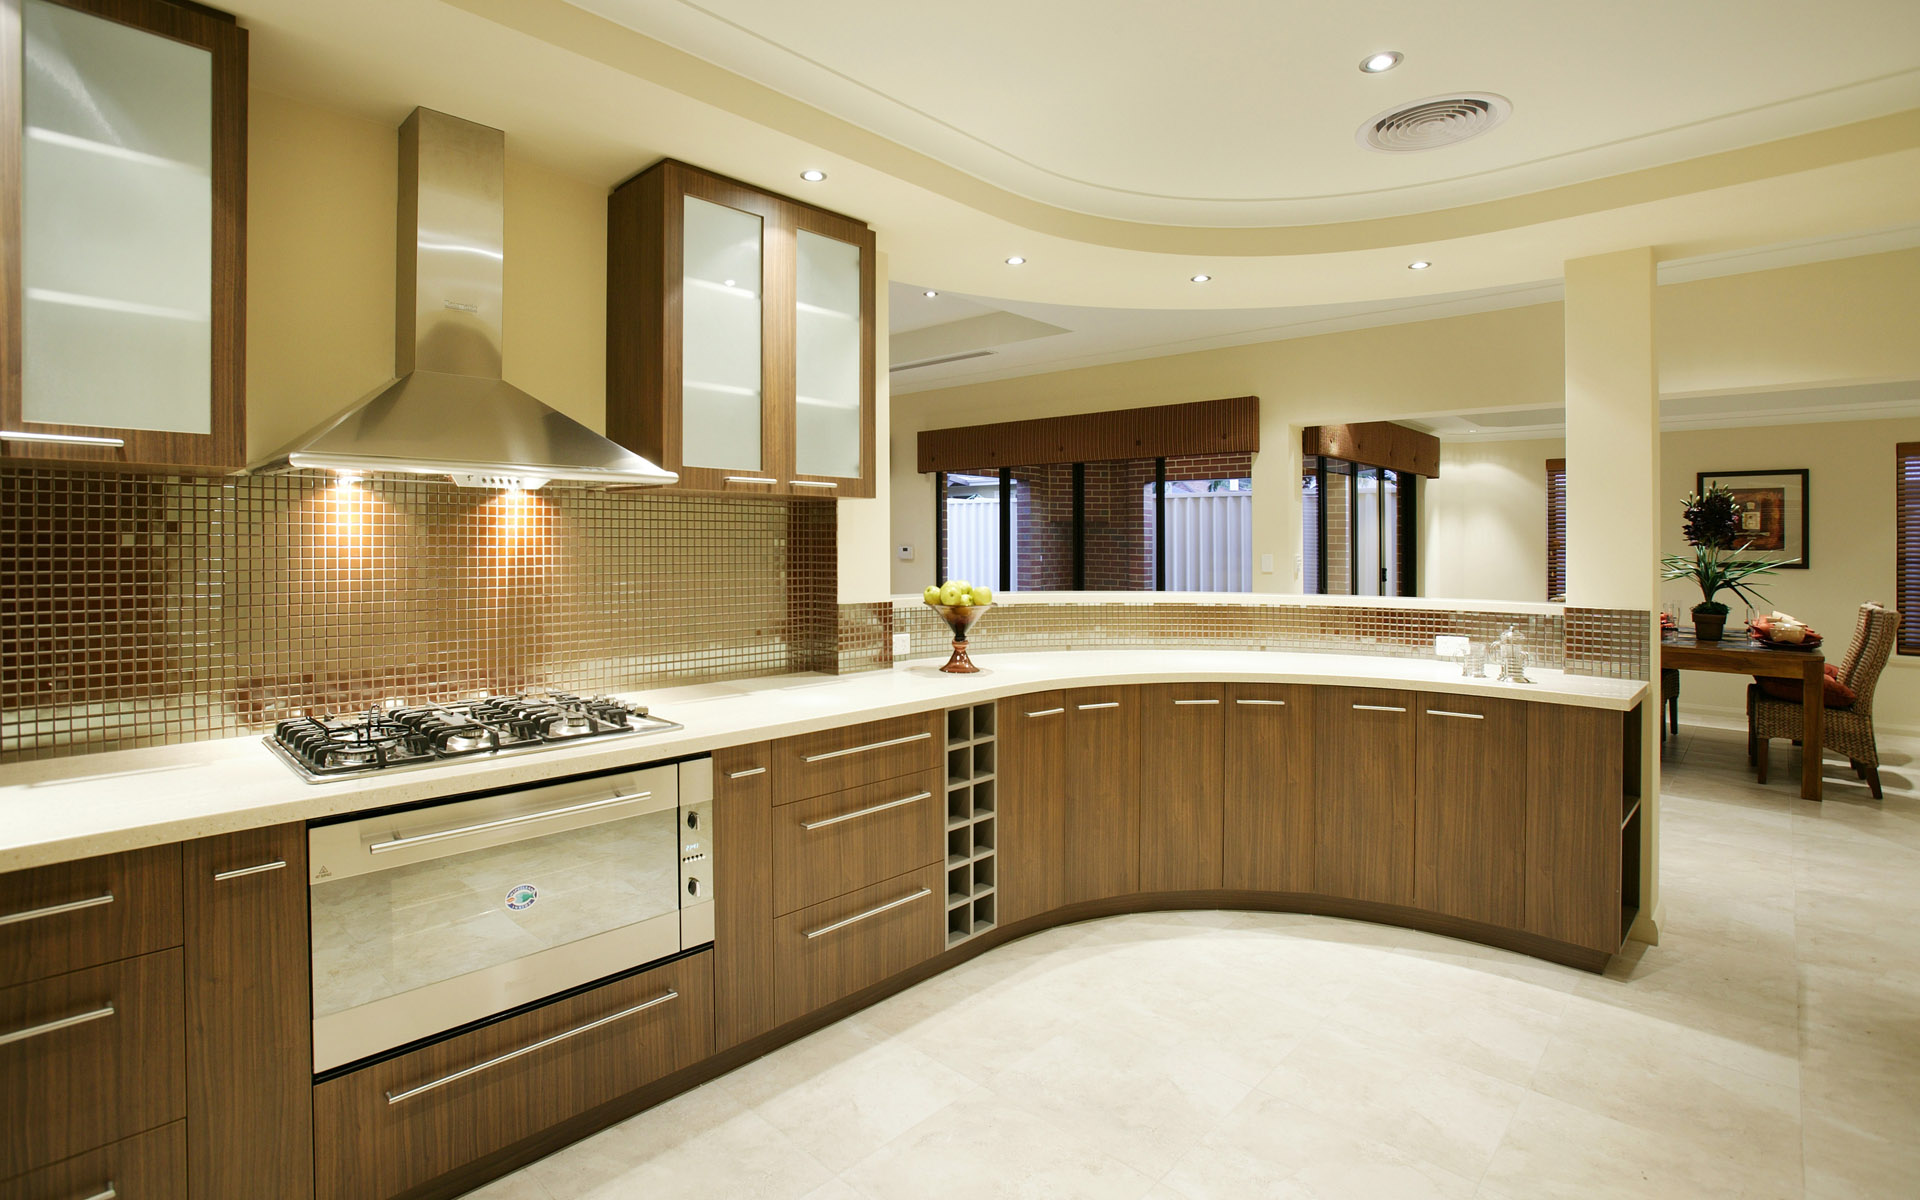 Kitchen Design Hd Wallpapers contemporary kitchen design hd wallpapers cabinets to ideas